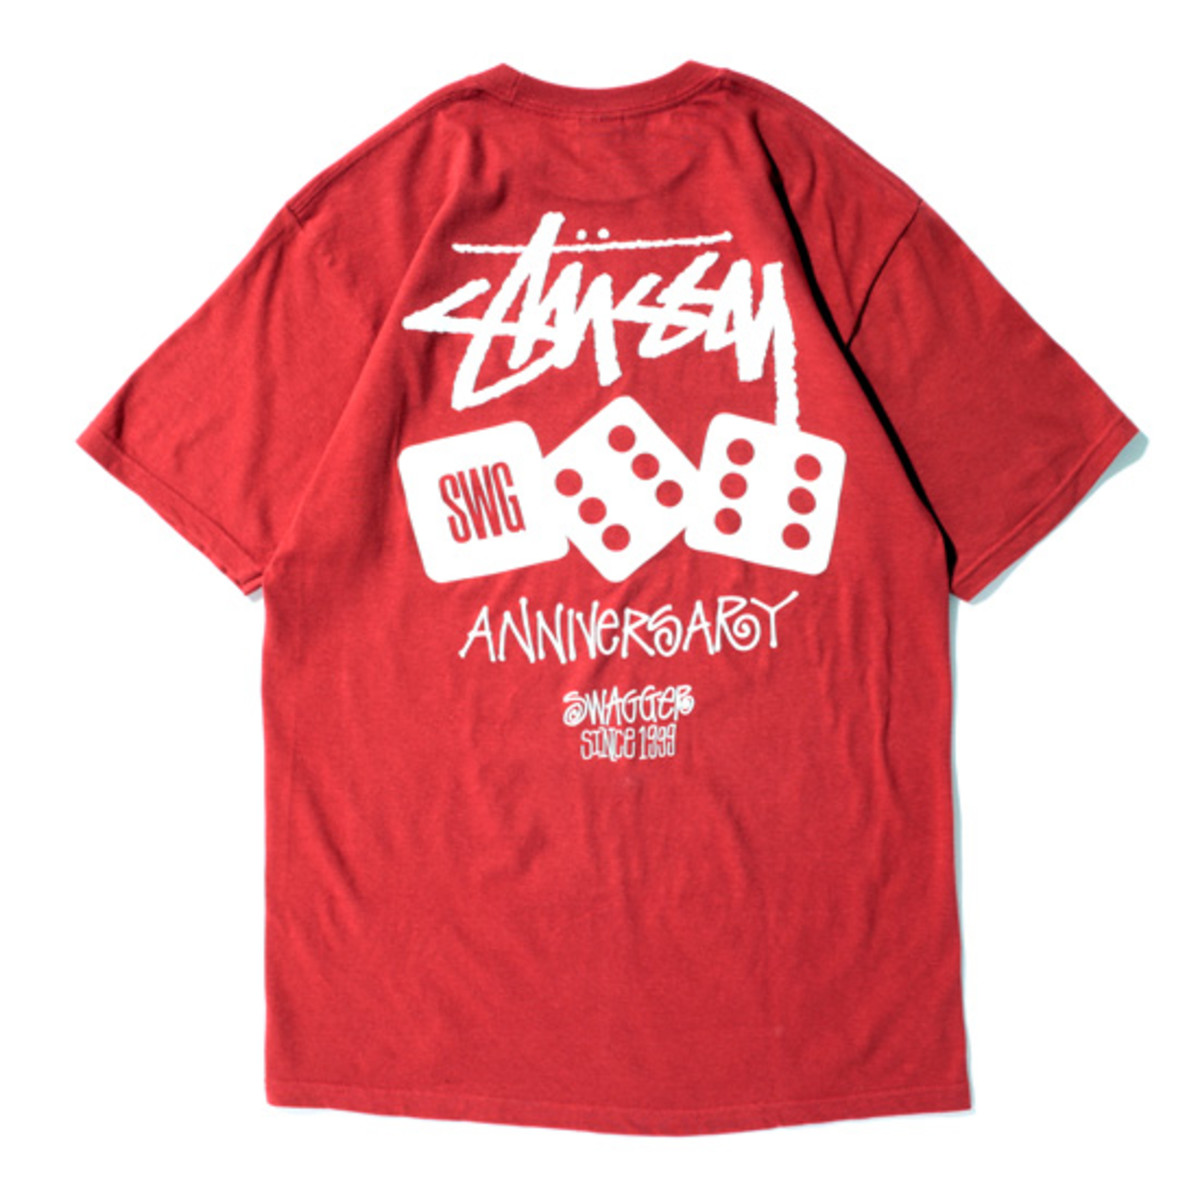 swagger-stussy-new-era-12th-anniversary-dice-t-shirt-06